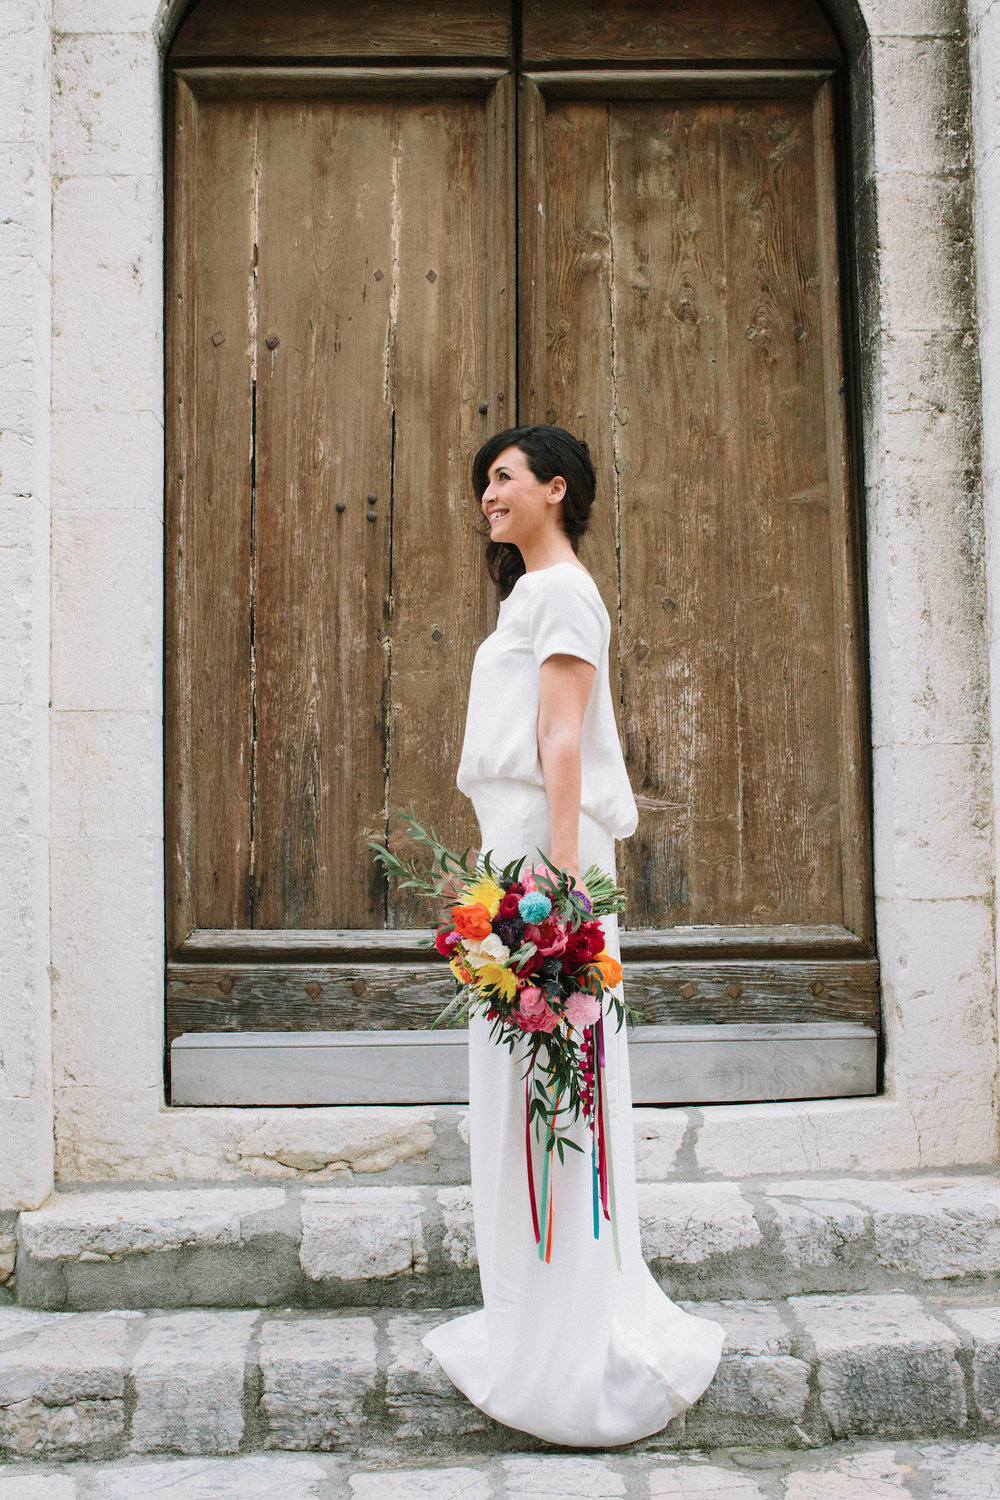 elopement-colorful-©-saya-photography-wedding-photographer-photographe-mariage-saint-paul-vence-rock-my-love-studio-ohlala-french-riviera-dress-bride-carnet-de-mariage